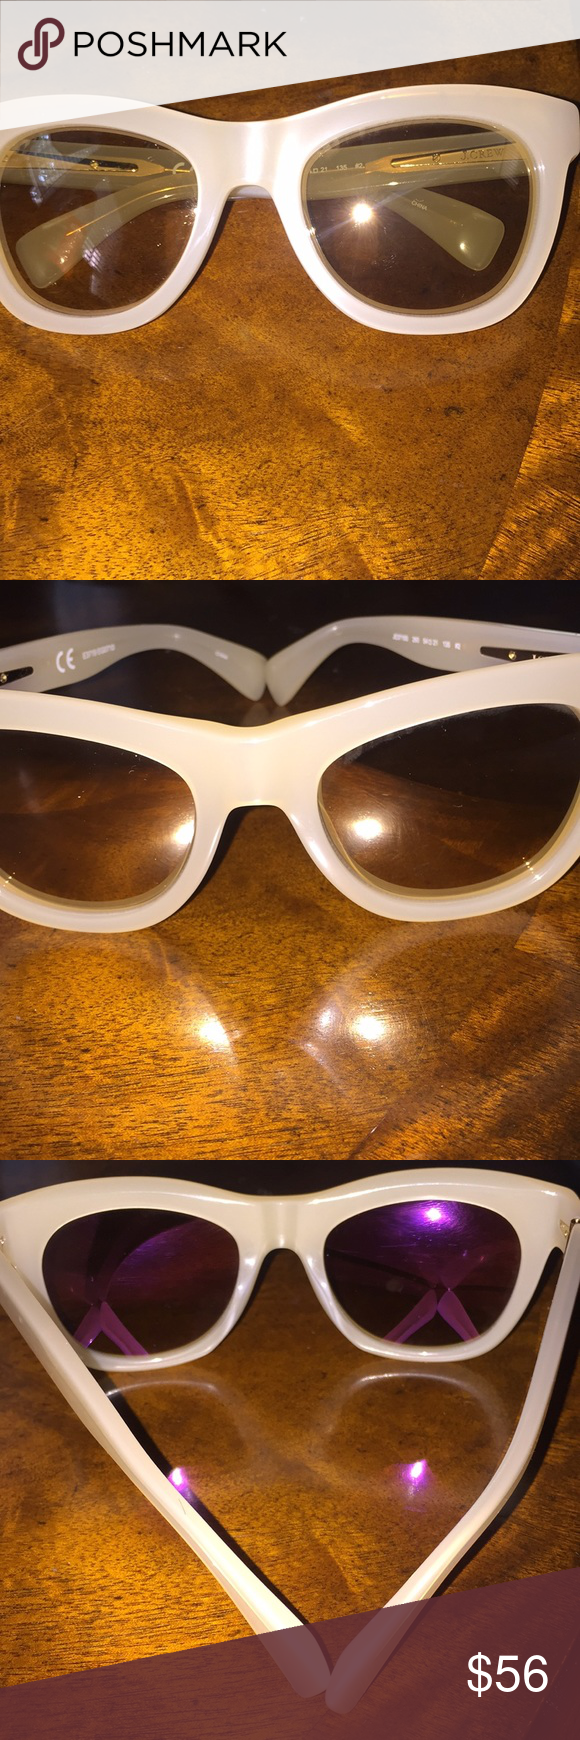 020a021867 J. Crew Betty Sunglasses J. Crew Betty oversized sunglasses in gorgeous  cream frame and bronze reflection. Brand new -never worn with case and  cleaning ...